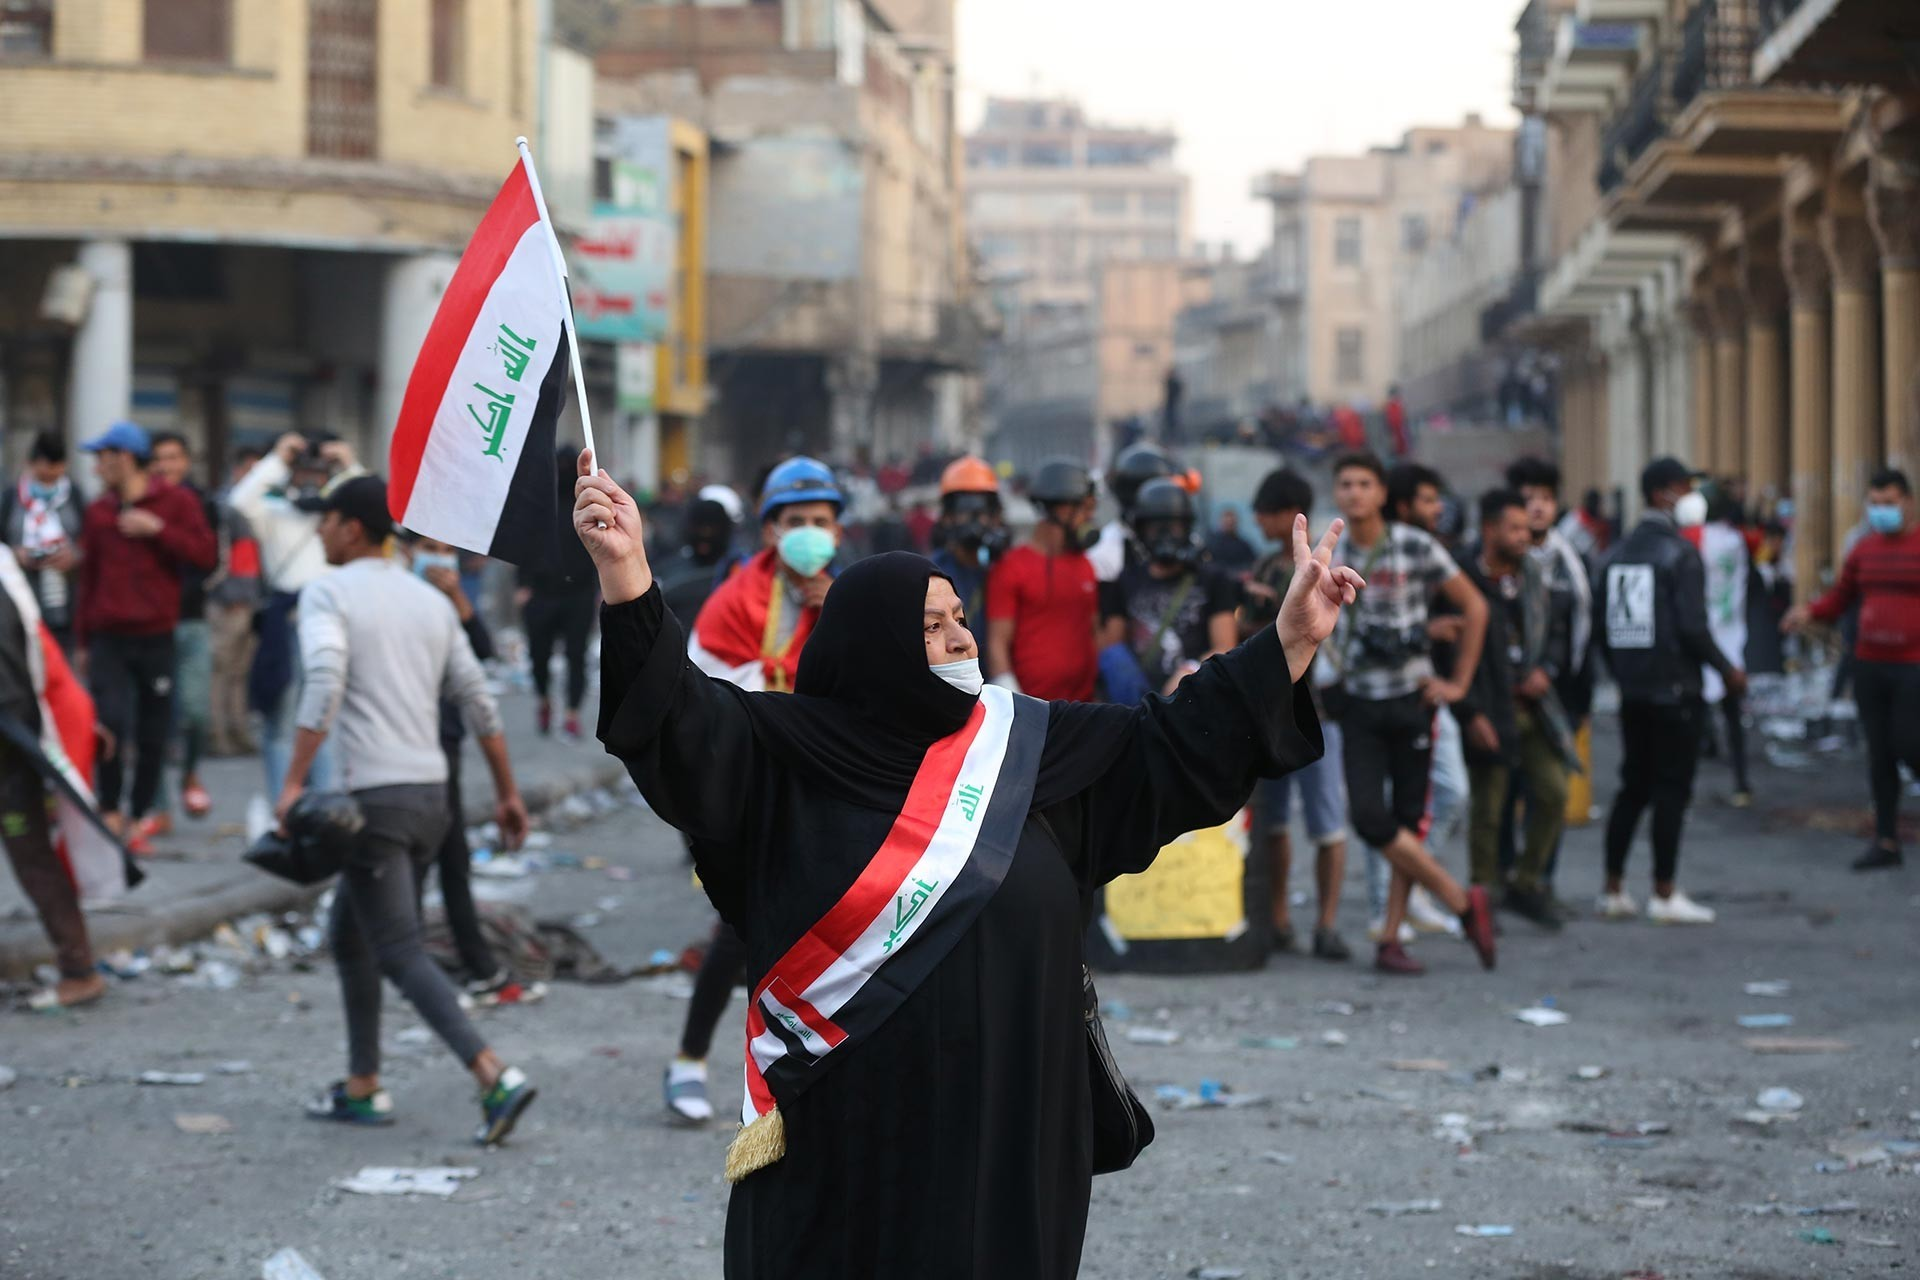 Woman protester holding a flag at her hand, in front of the crowd in Iraq.